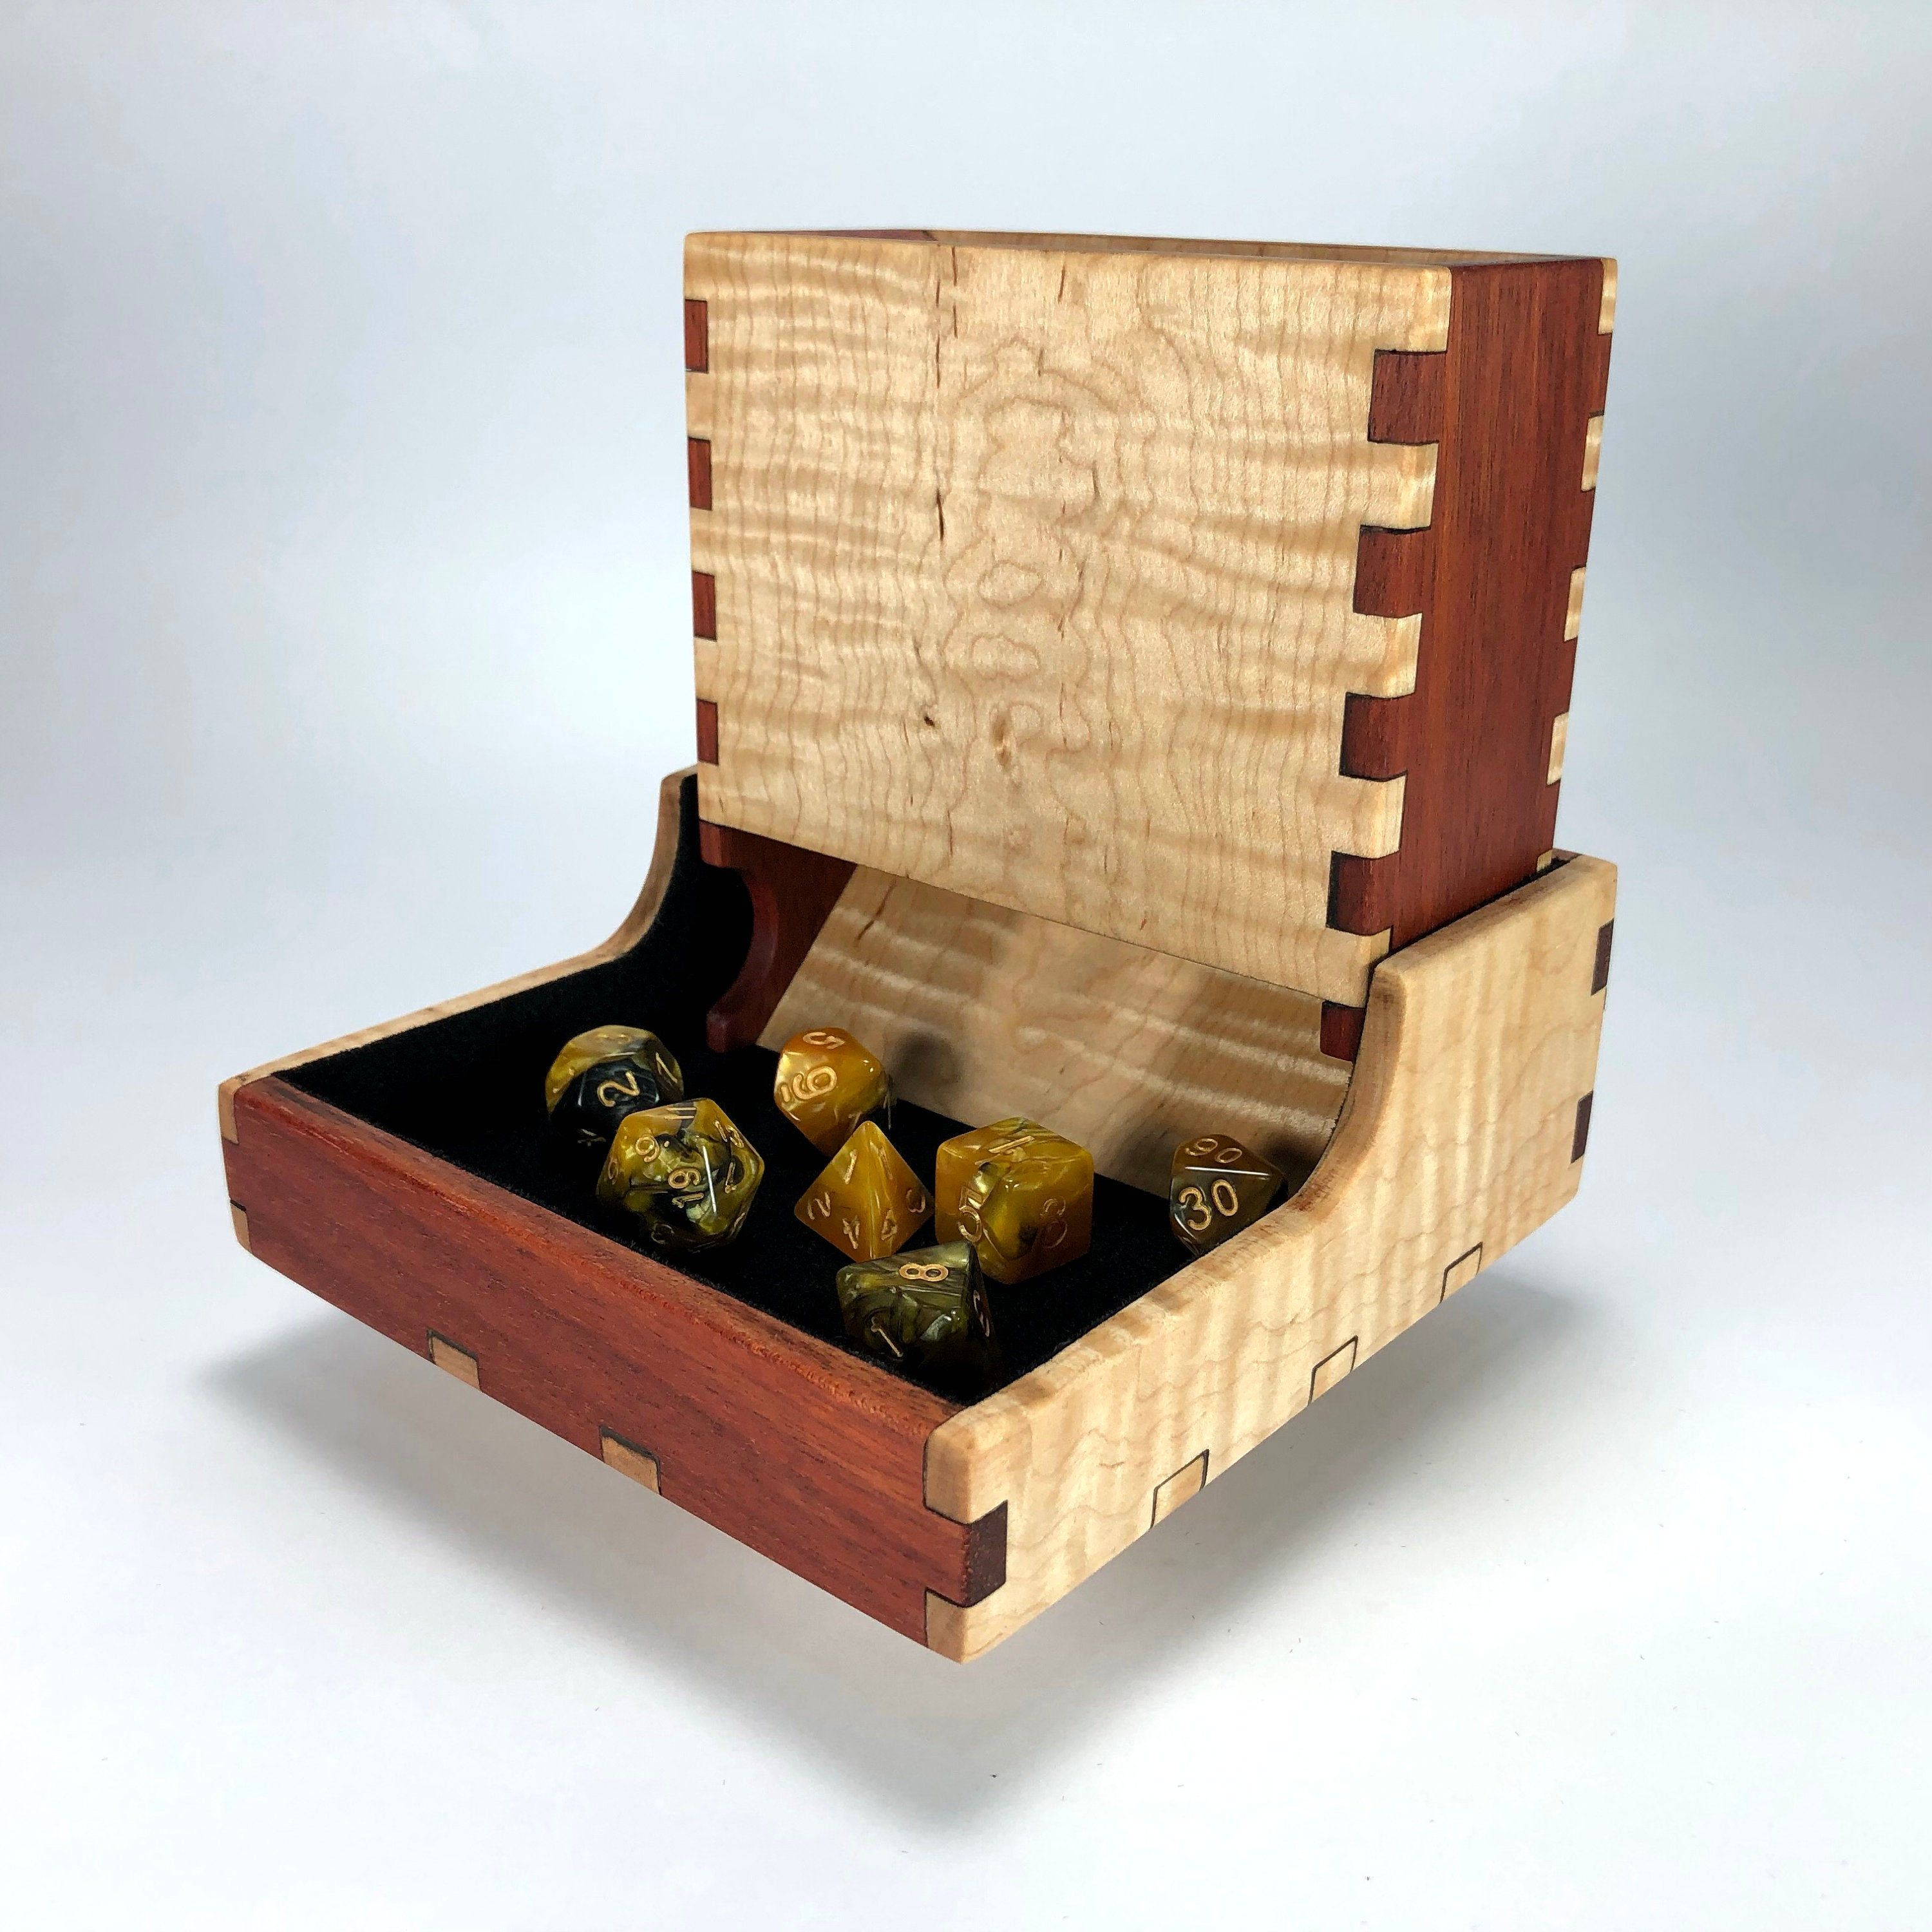 Bloodwood and Curly Maple Dice Tower and Tray with Dice